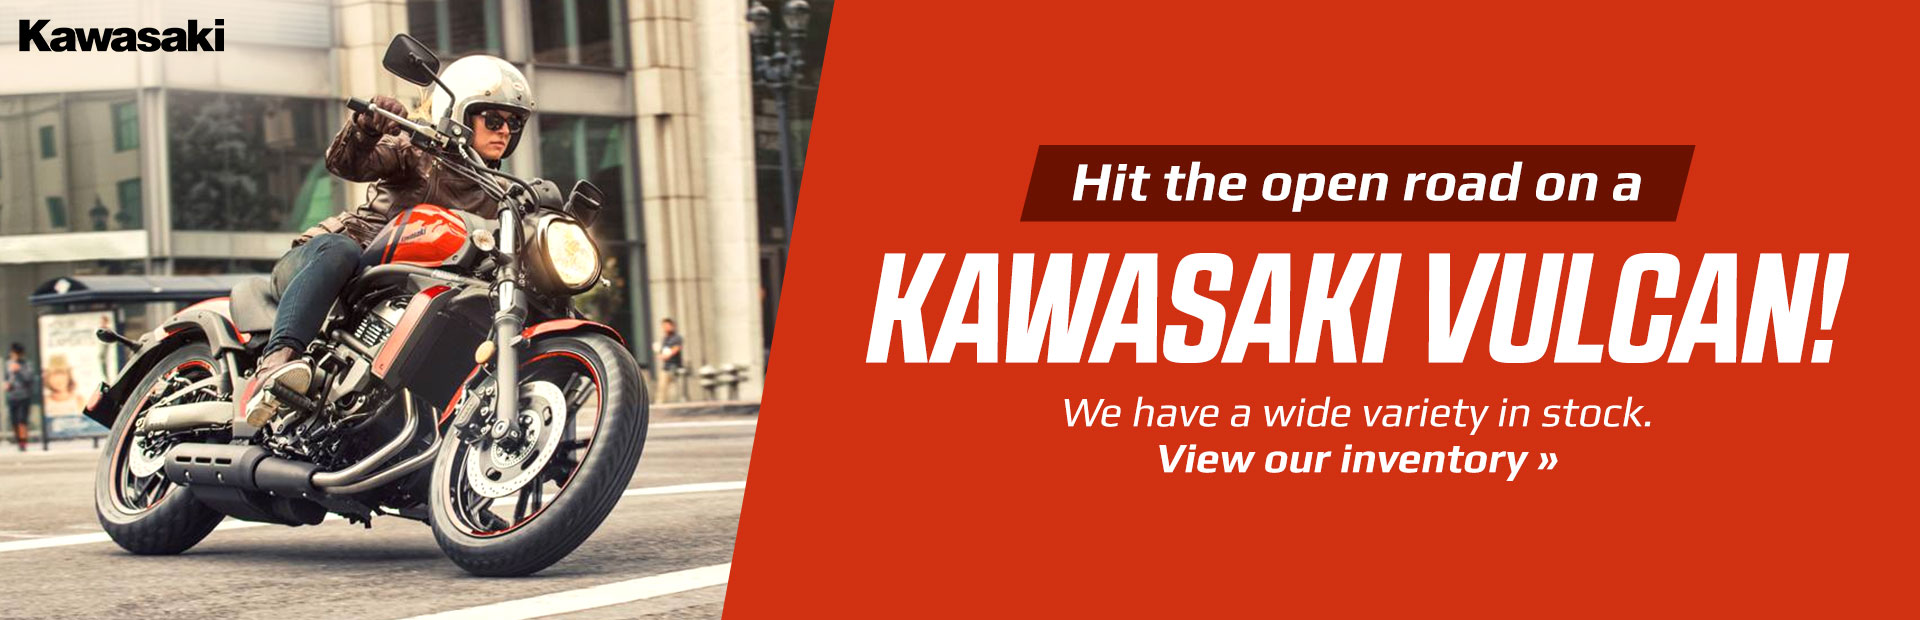 Hit the open road on a Kawasaki Vulcan!